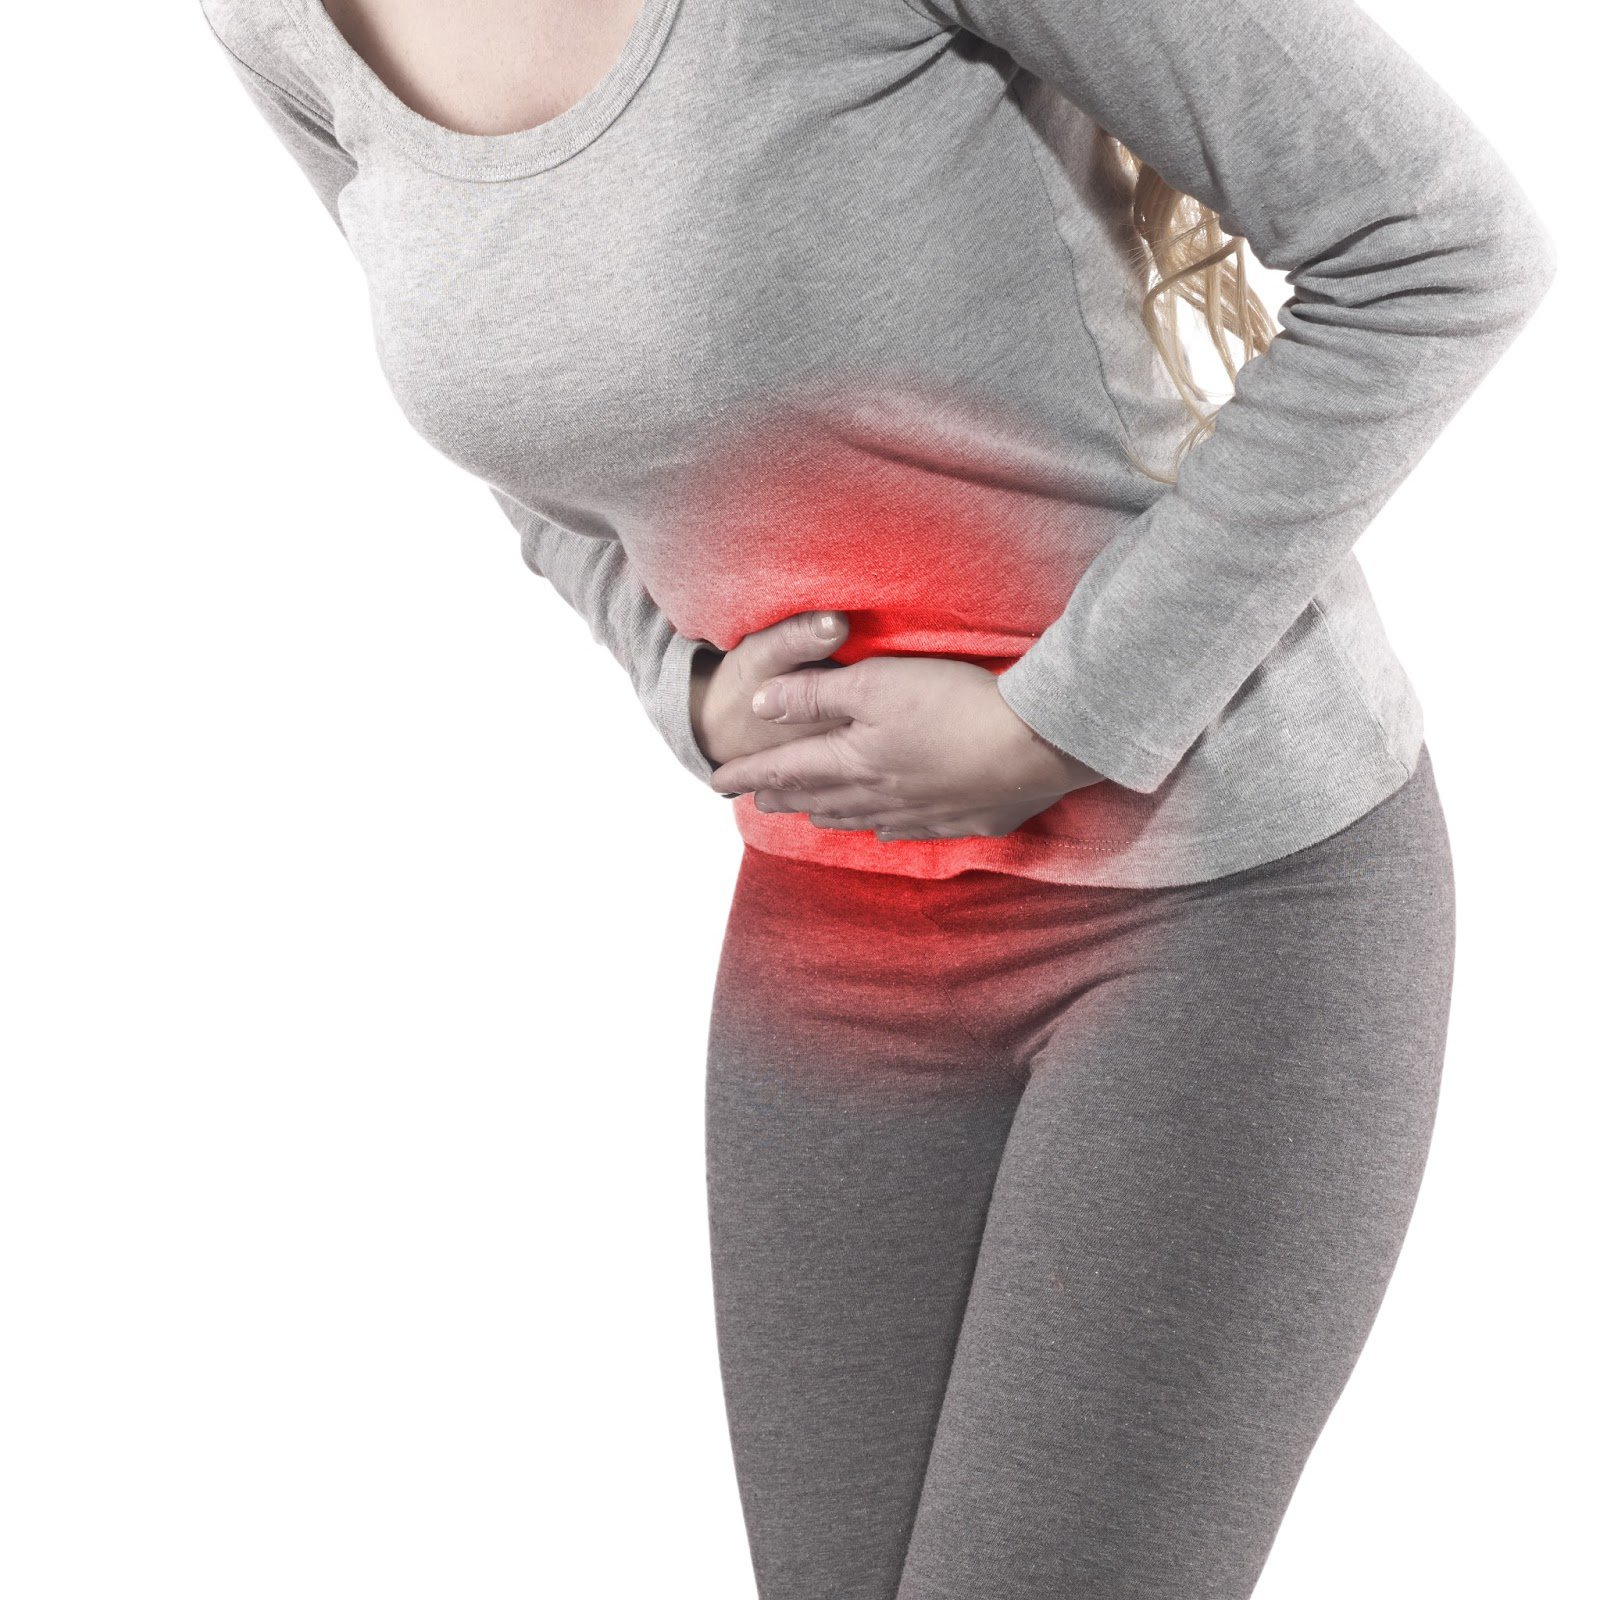 A low FODMAP diet in inflammatory bowel disease (IBD)